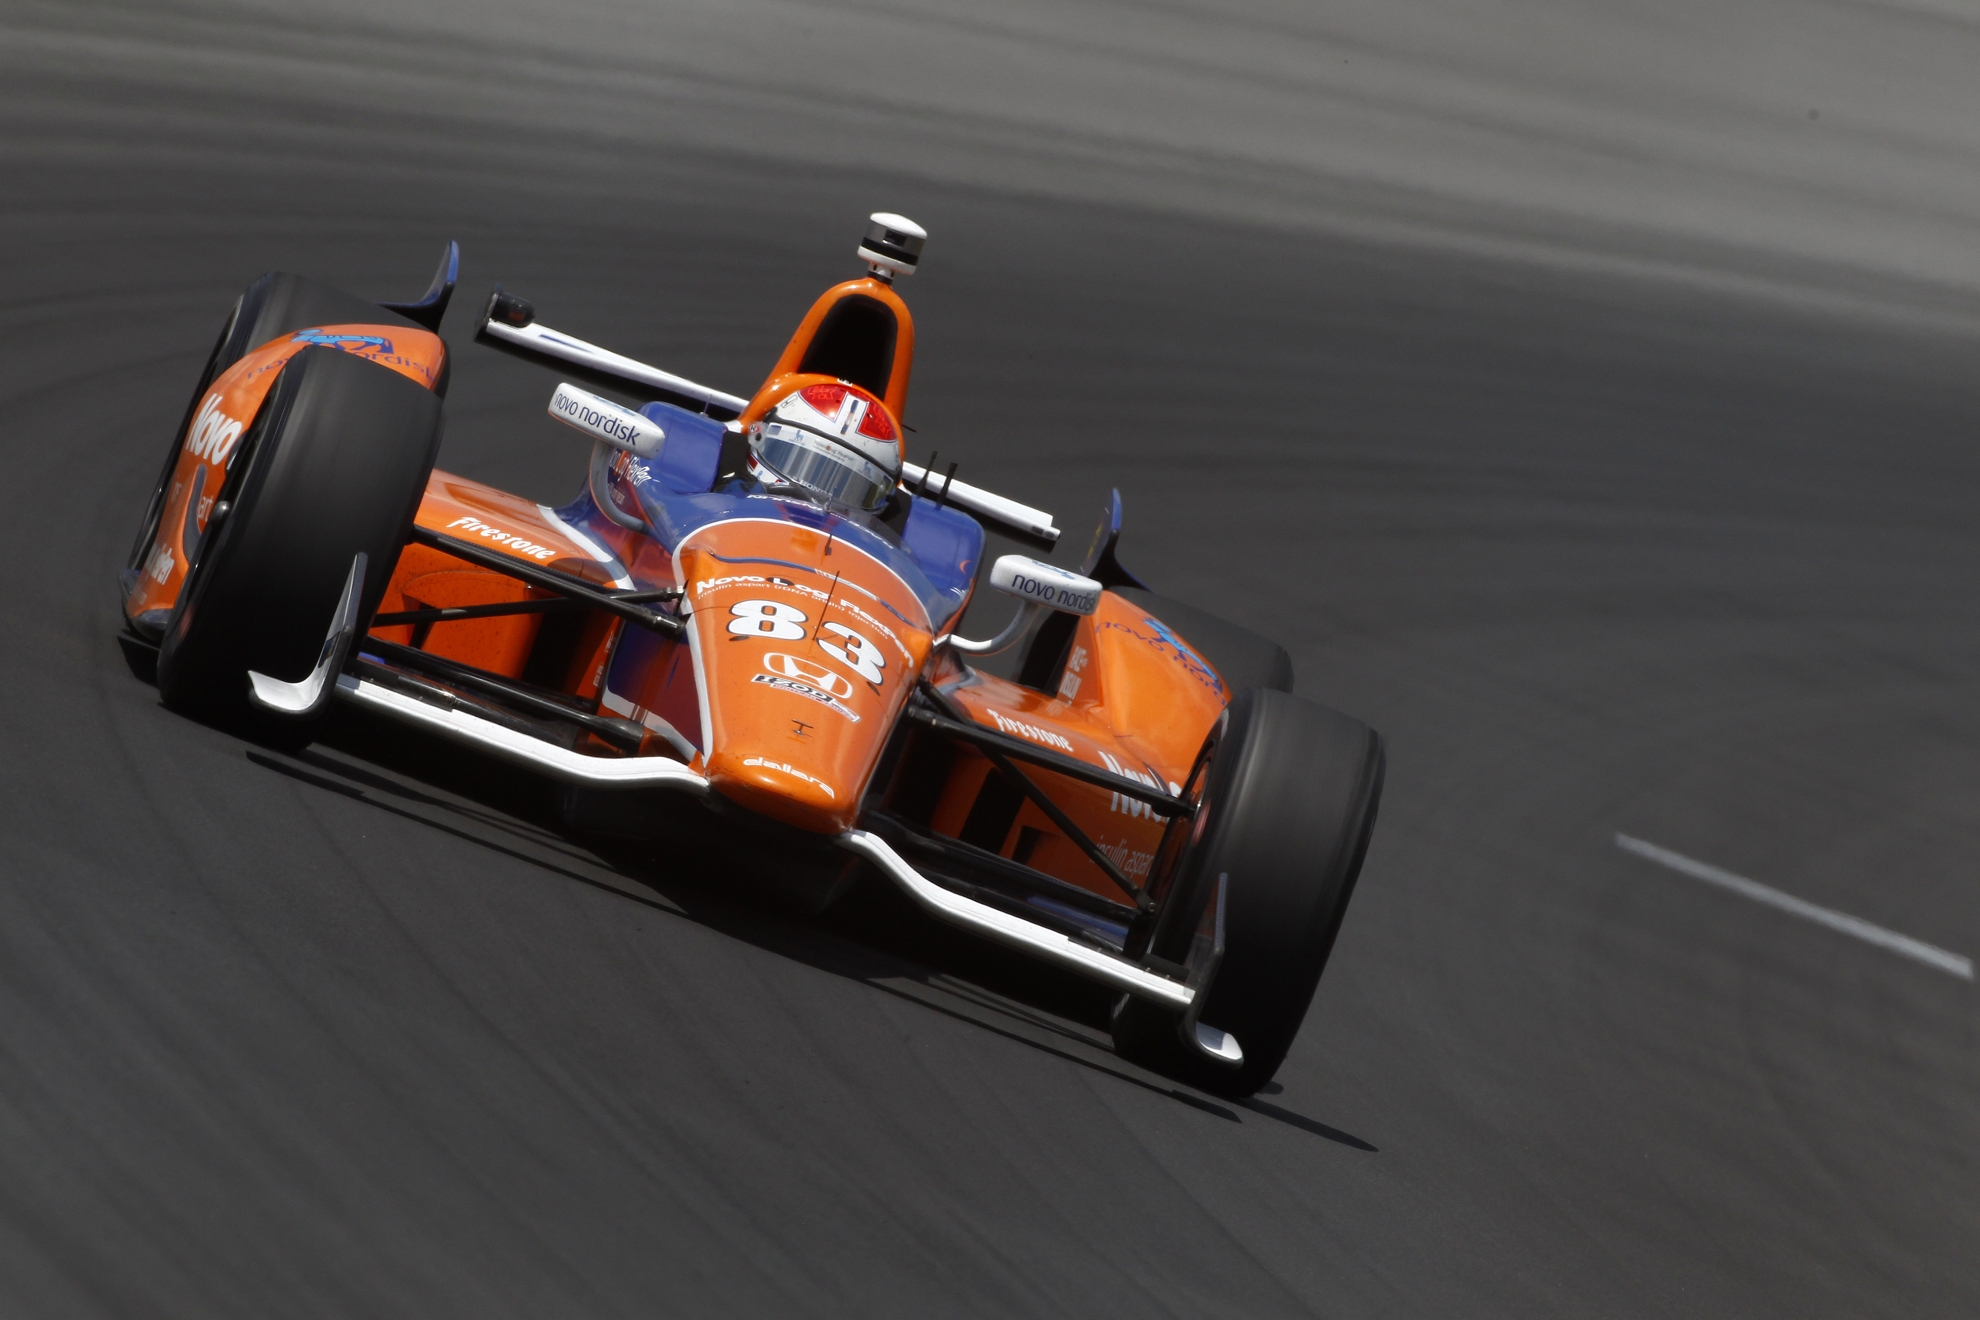 2013 Indy Car Racing